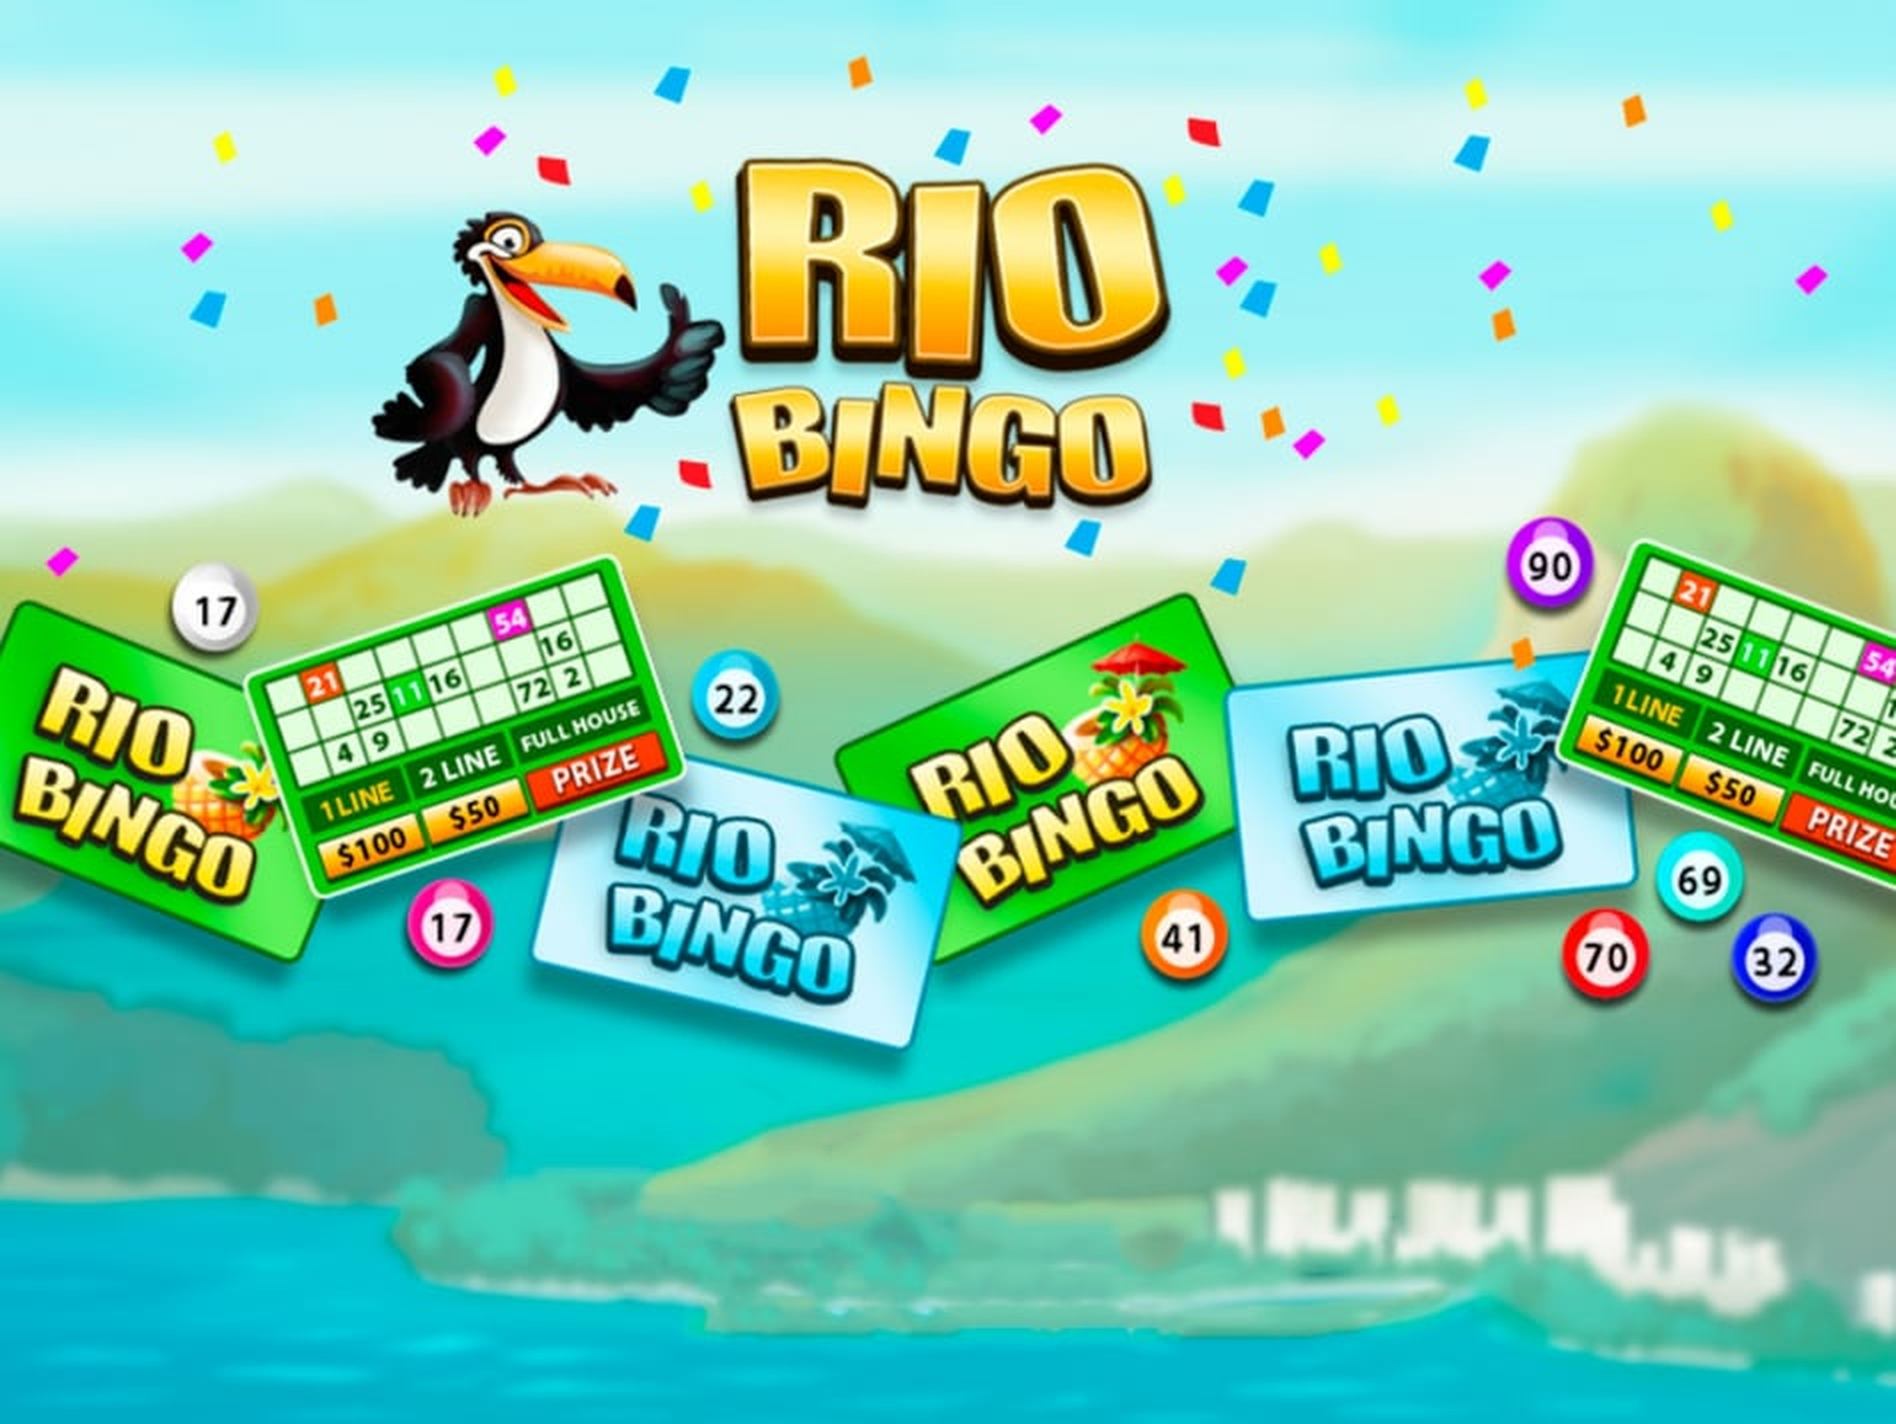 The Rio Bingo Online Slot Demo Game by Pariplay